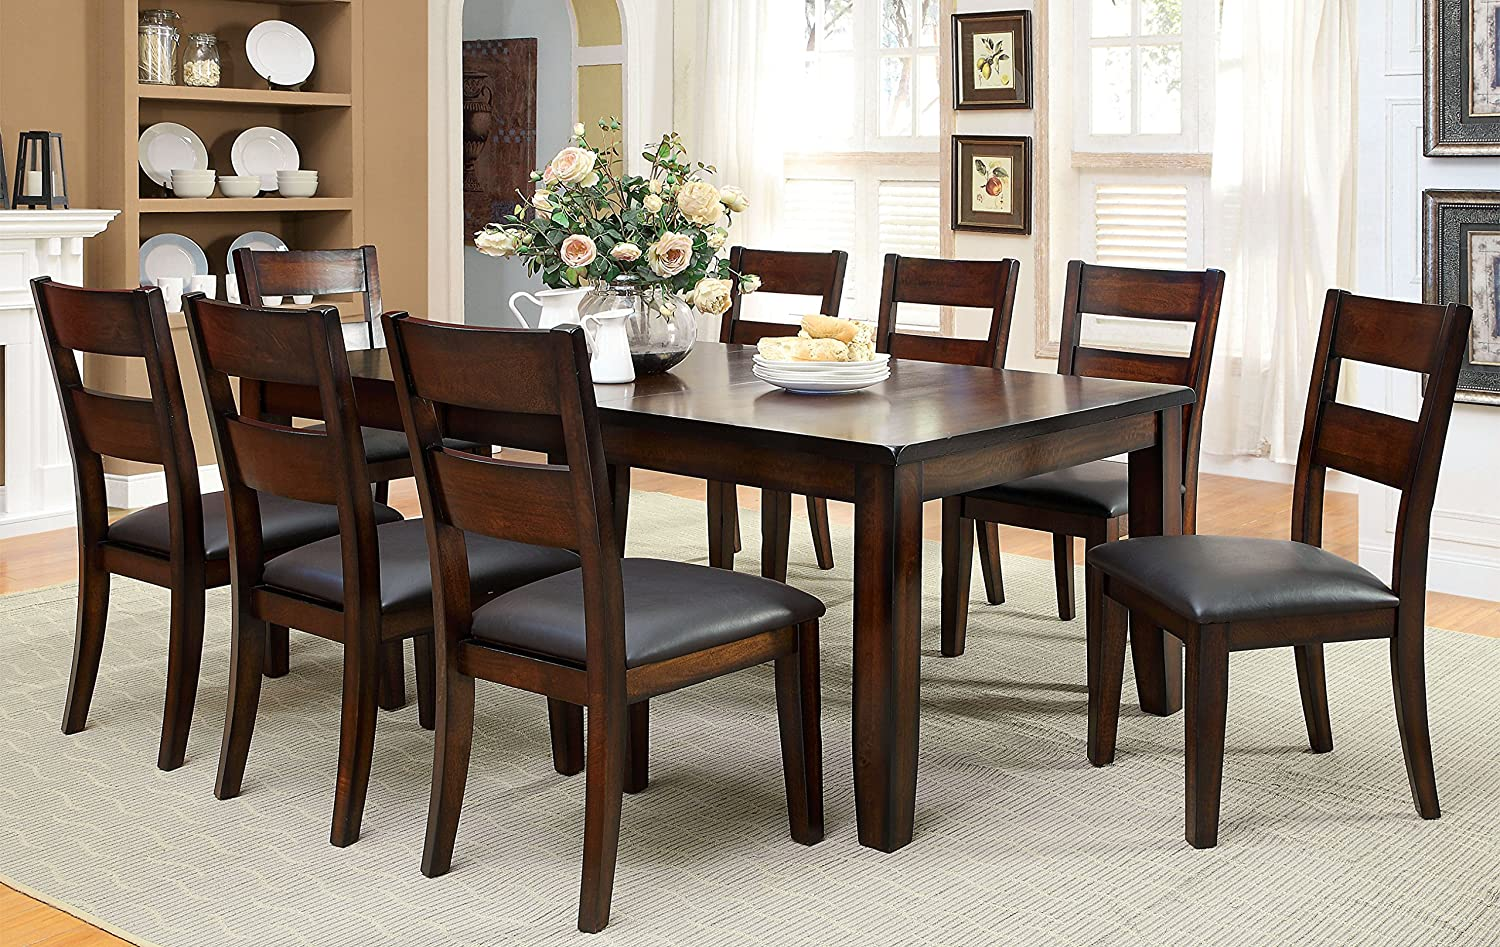 Dark Wood Dining Room Chairs stencil on furniture branch globe glass chandelier stylish mid century dining chairs luxurious brown leather dining chair cool dangling bulb pendant lights Amazoncom Furniture Of America Dallas 9 Piece Transitional Dining Set Dark Cherry Table Chair Sets